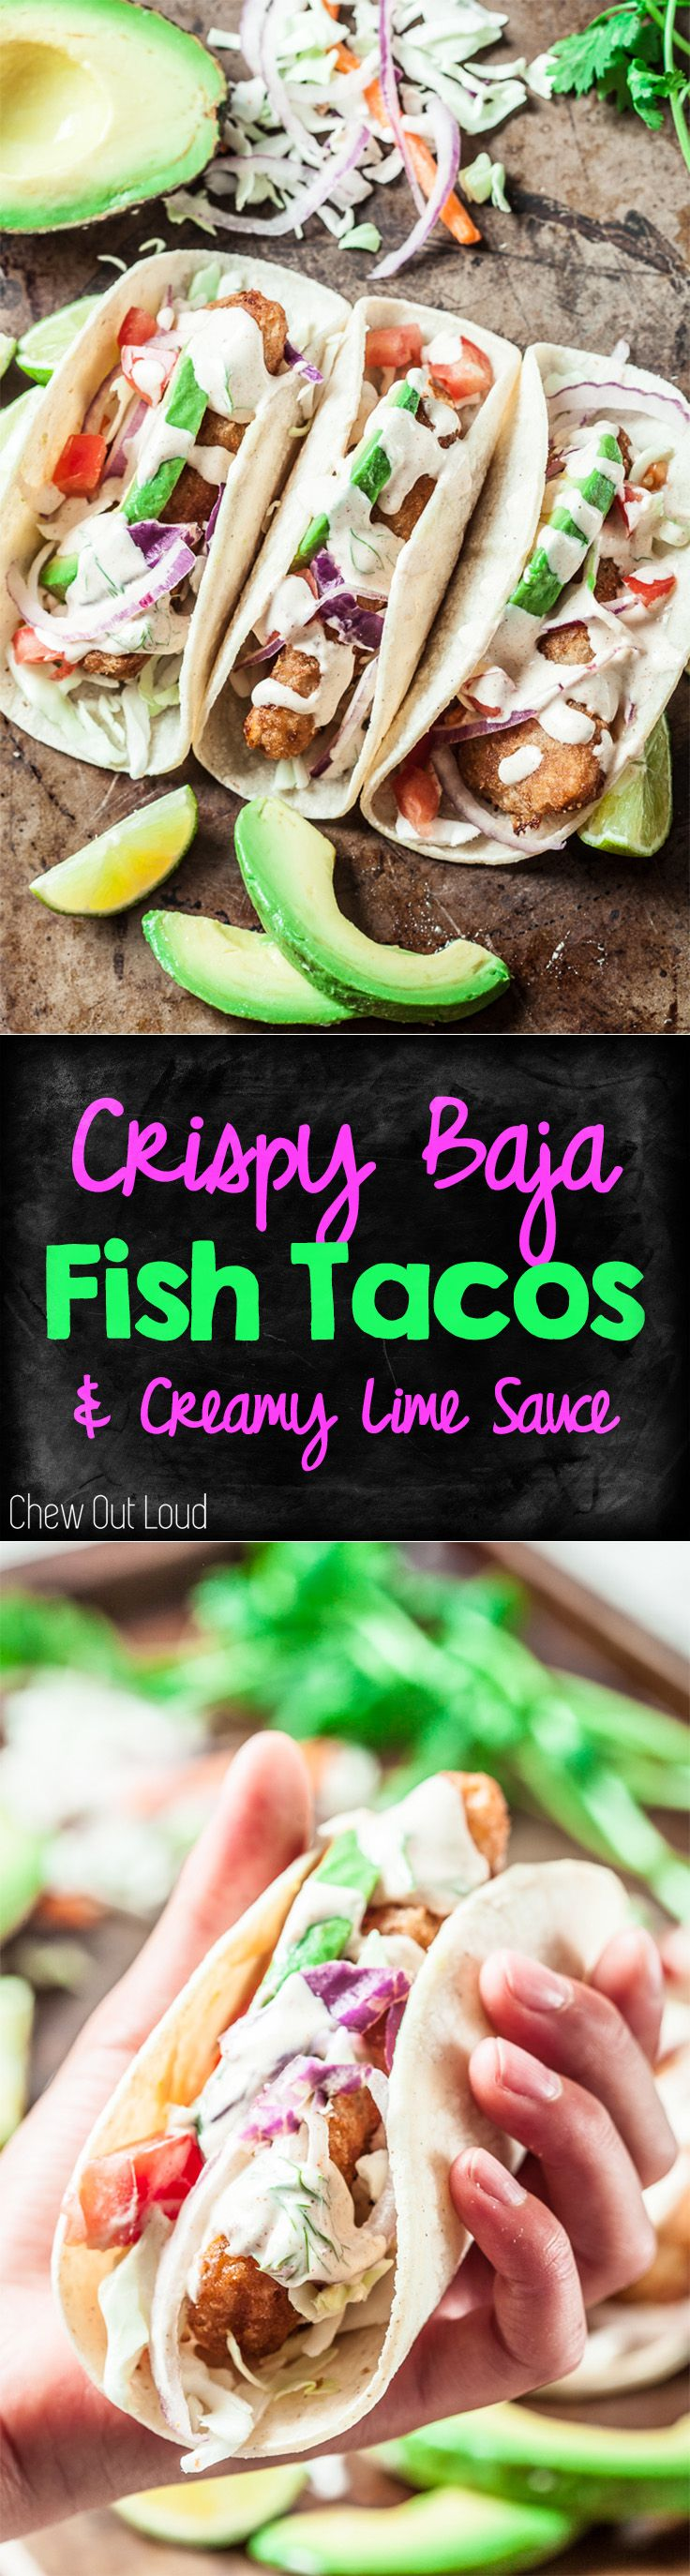 Crispy Baja Fish Tacos with Creamy Lime Sauce. Healthy. Delicious.  #fish #seafood #tacos #recipe #dinner #healthy #mexicanfood #chewoutloud www.chewoutloud.com